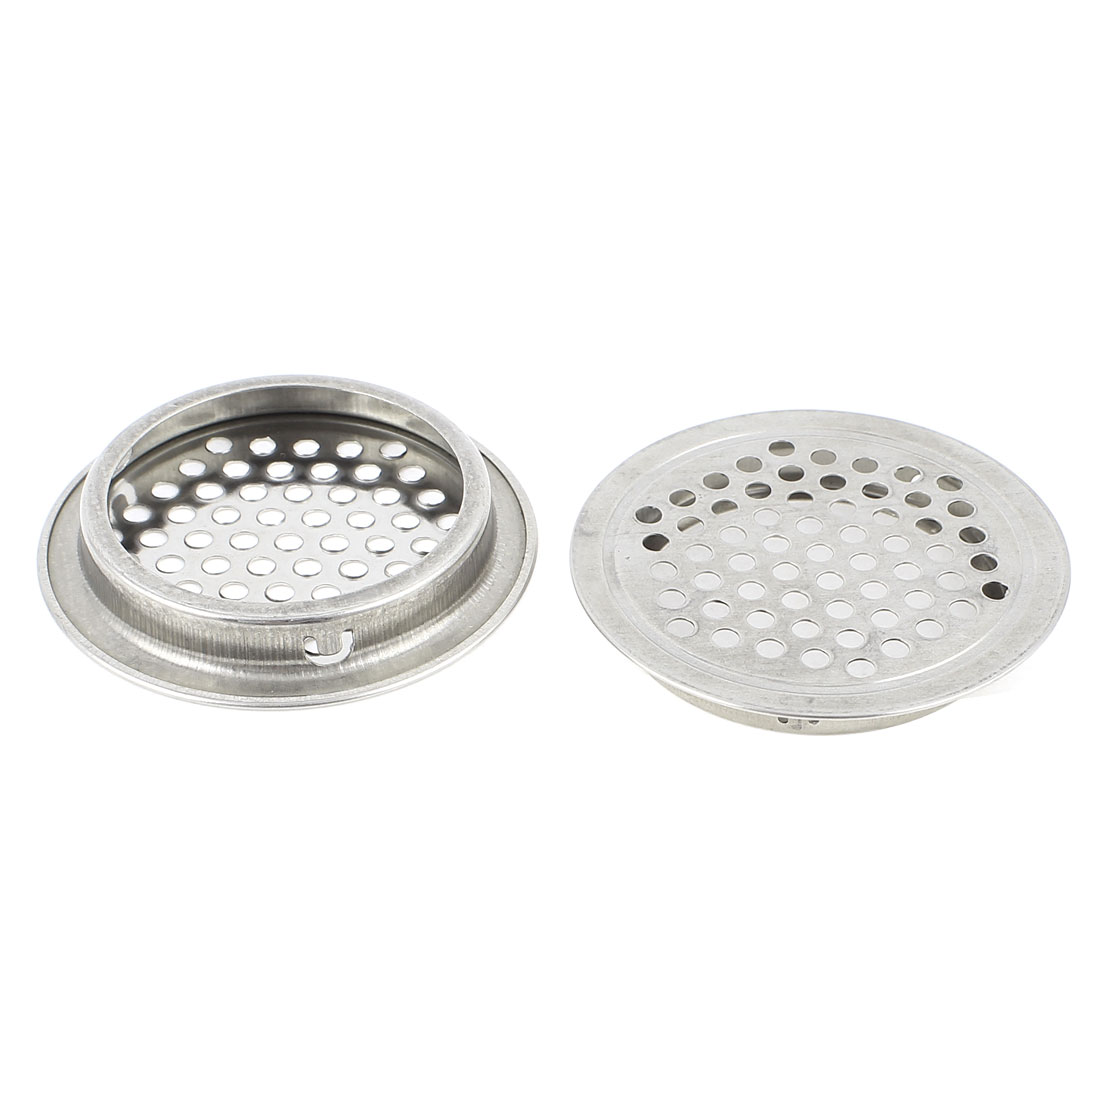 2Pcs 52mm Bottom Dia Round Stainless Steel Perforated Mesh Air Vents Louvers